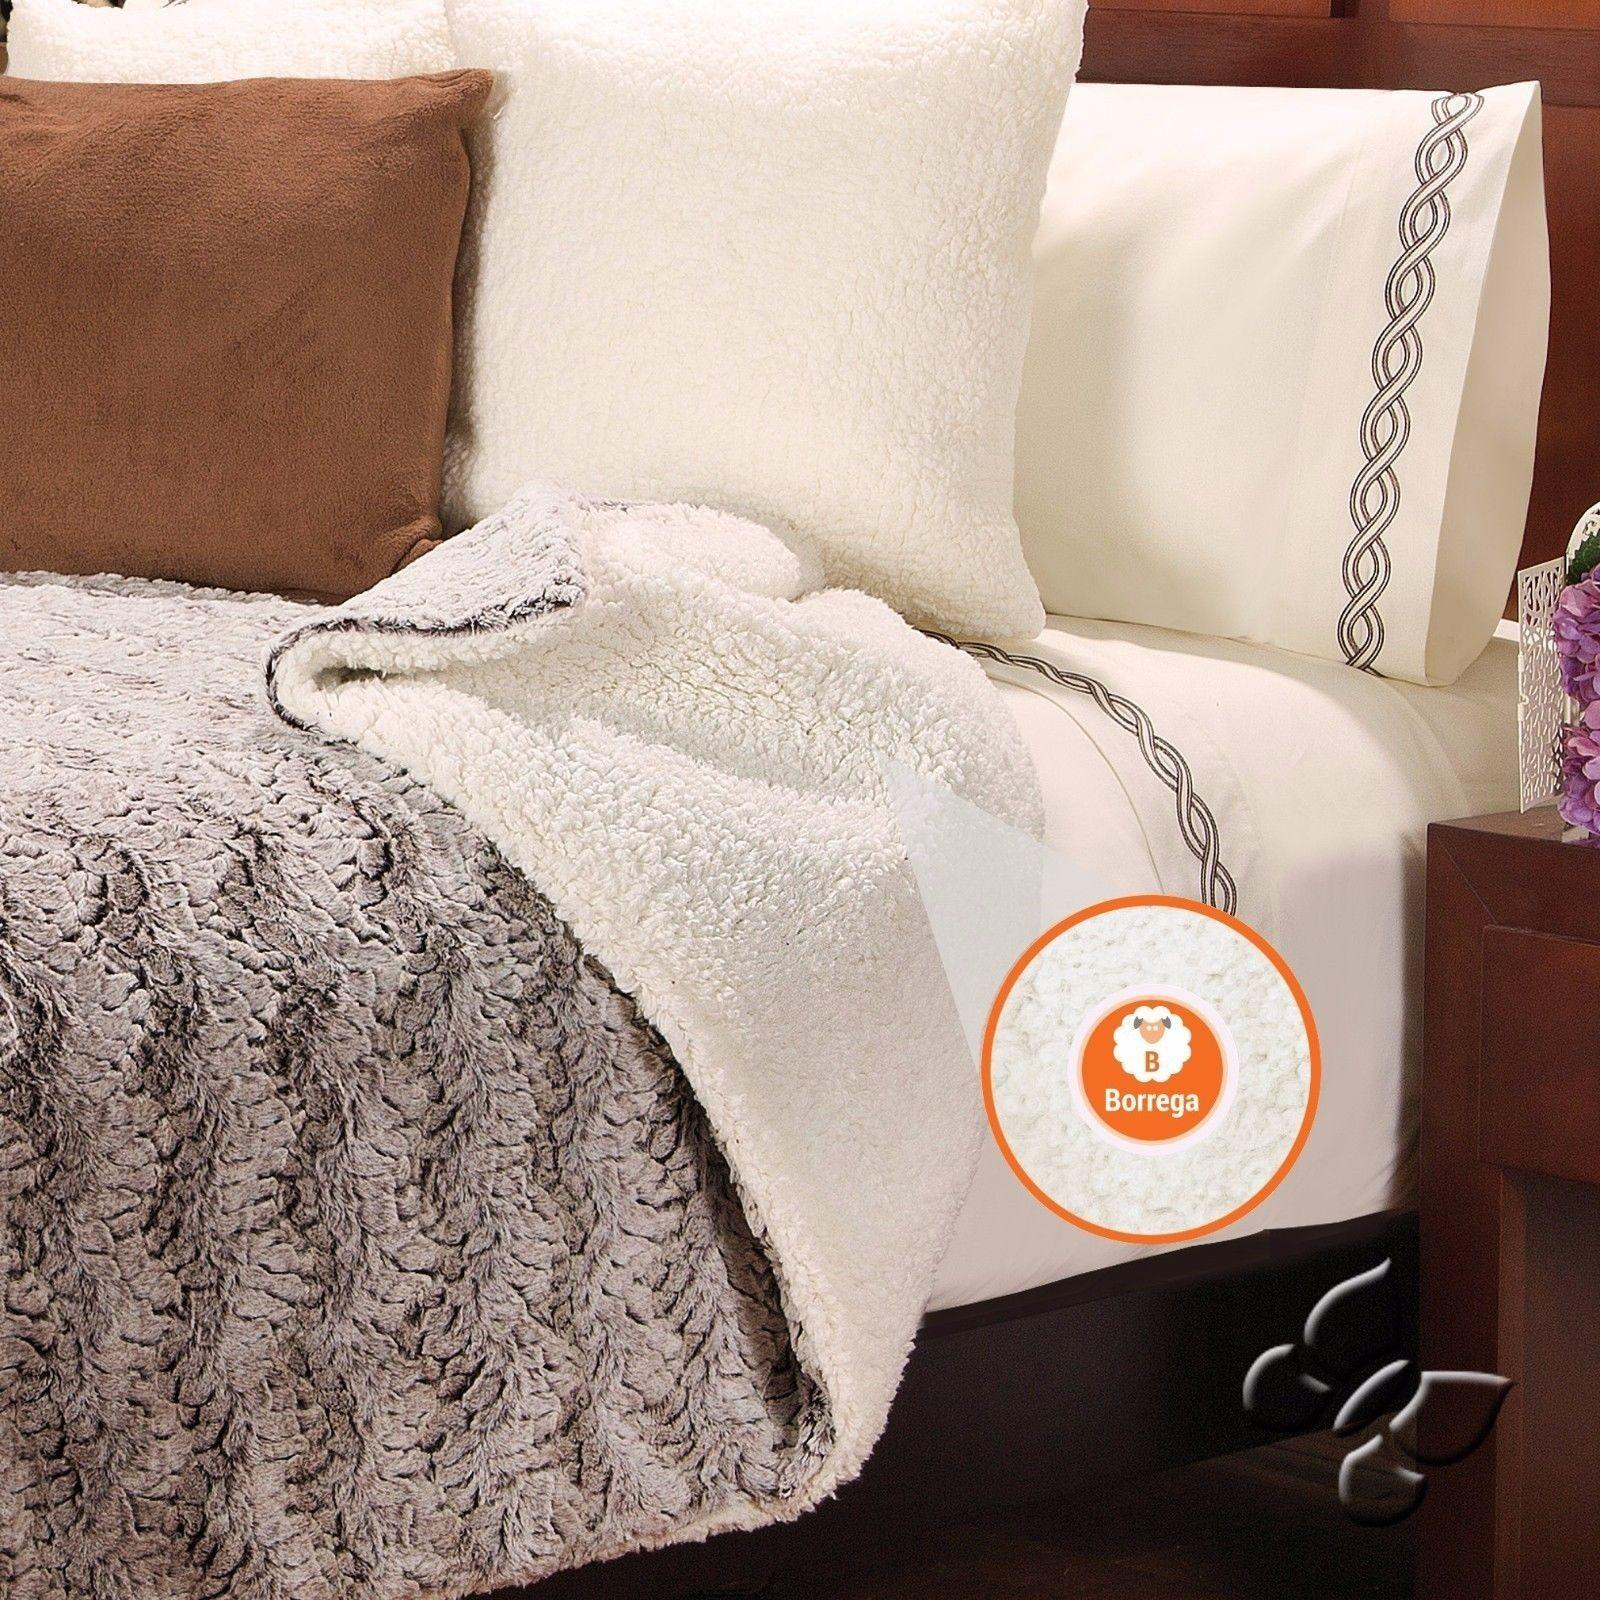 york a for nights masculine with cold has bauer bed dress pin comforter in your the new barcelona premium winter queen elegance those bedrooms fleece teen j ideal eddie